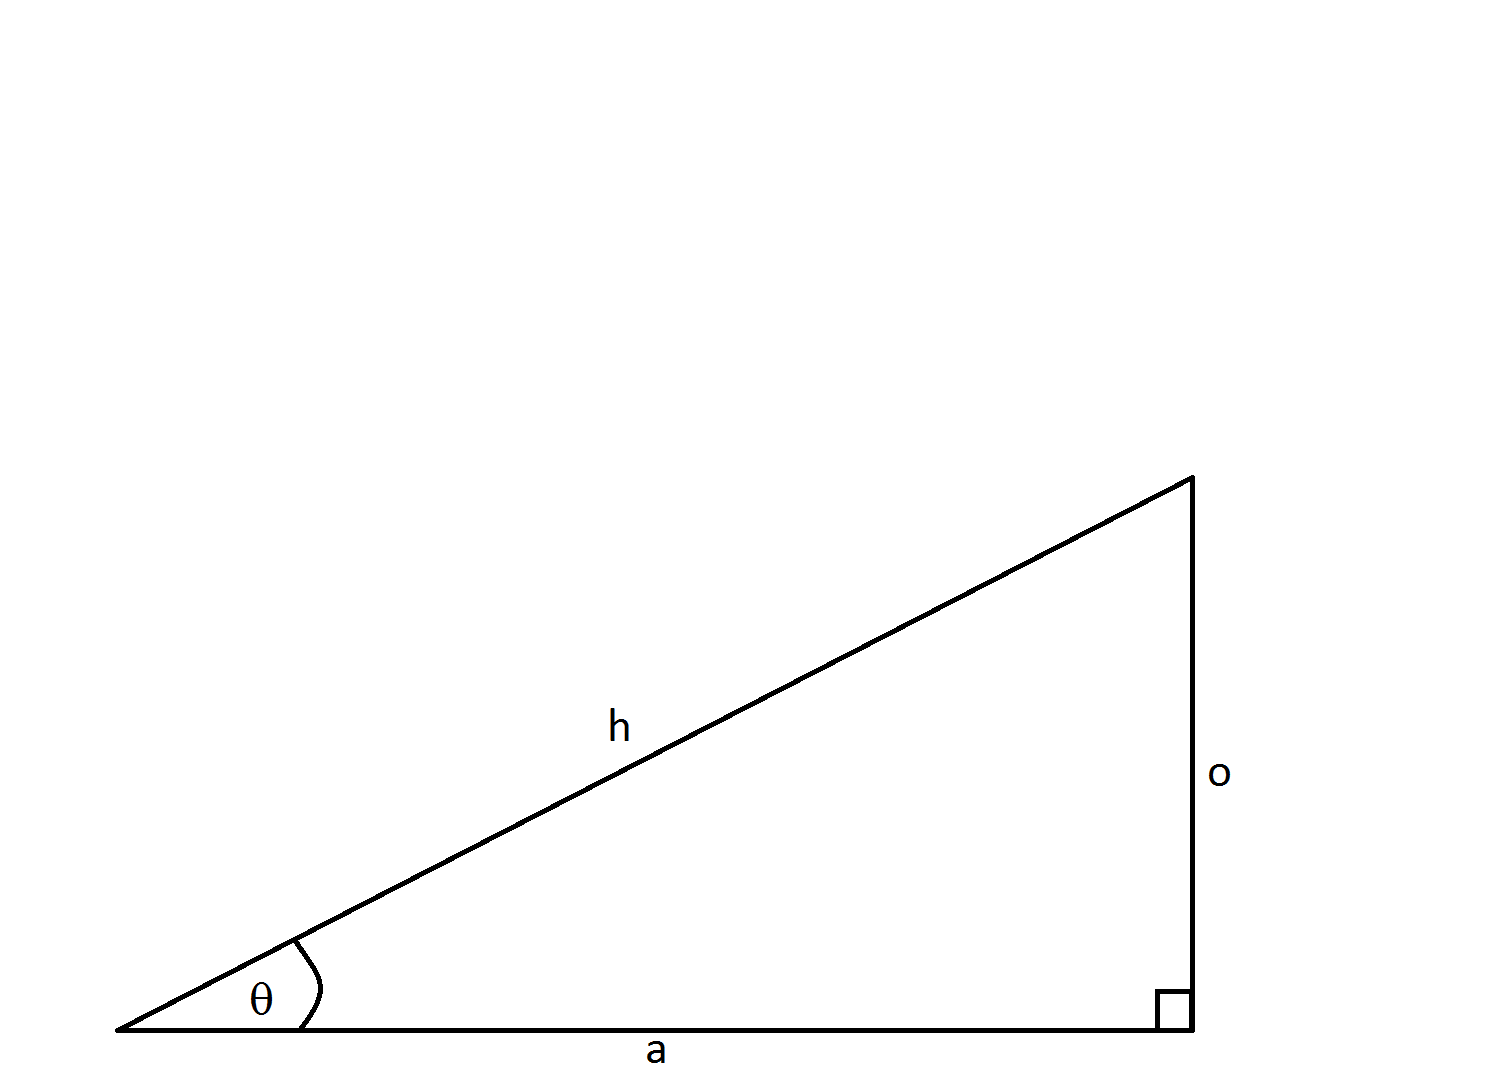 how to the length of the hypotenuse of a right triangle example question 1 how to the length of the hypotenuse of a right triangle pythagorean theorem